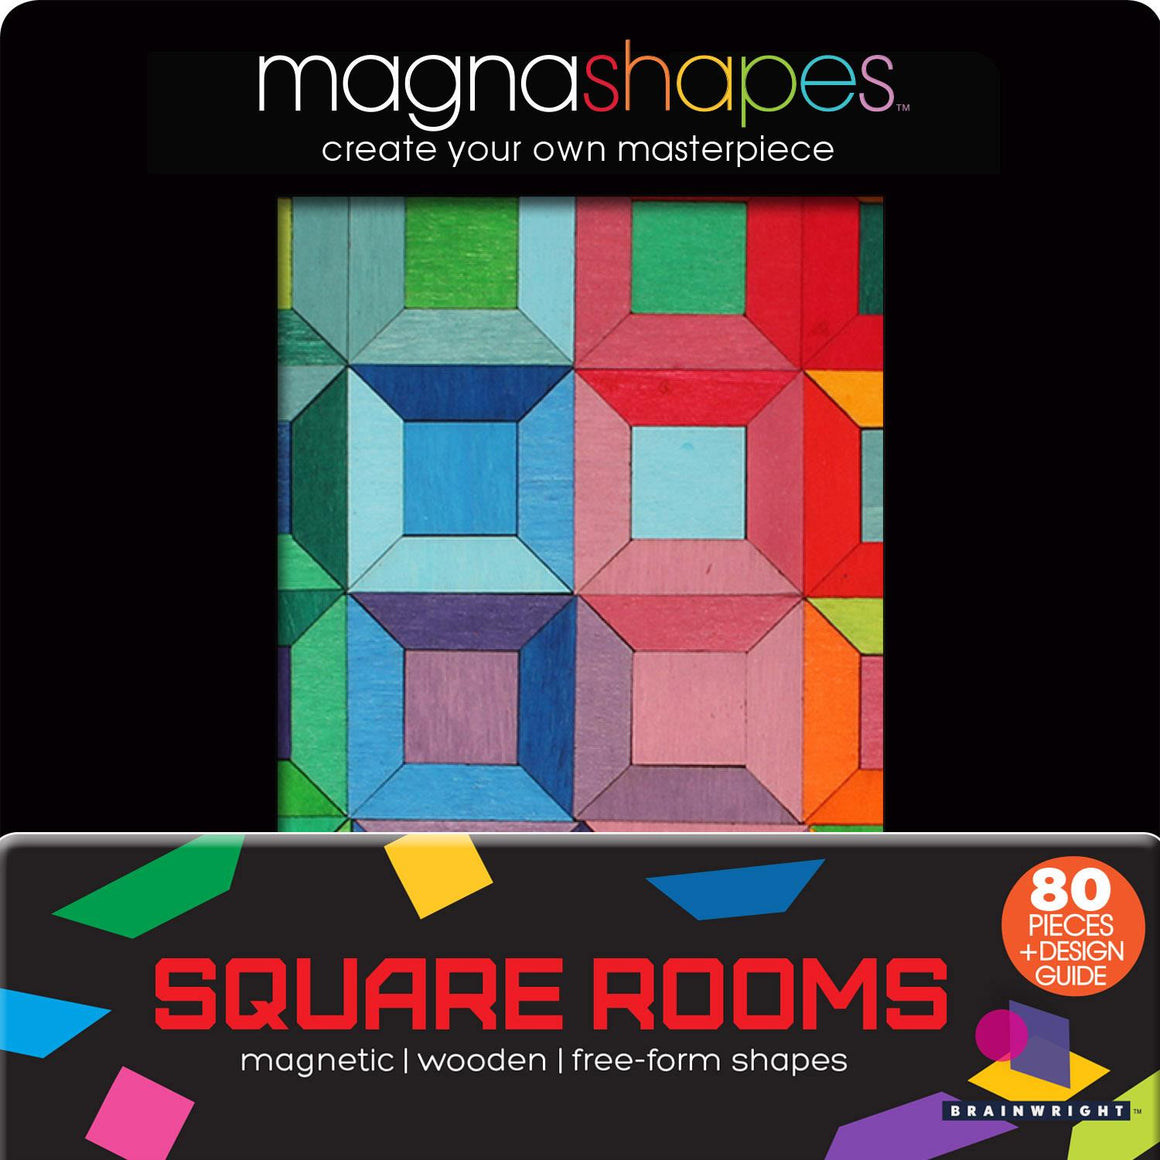 Square Rooms | Magnashapes | The Gifted Type